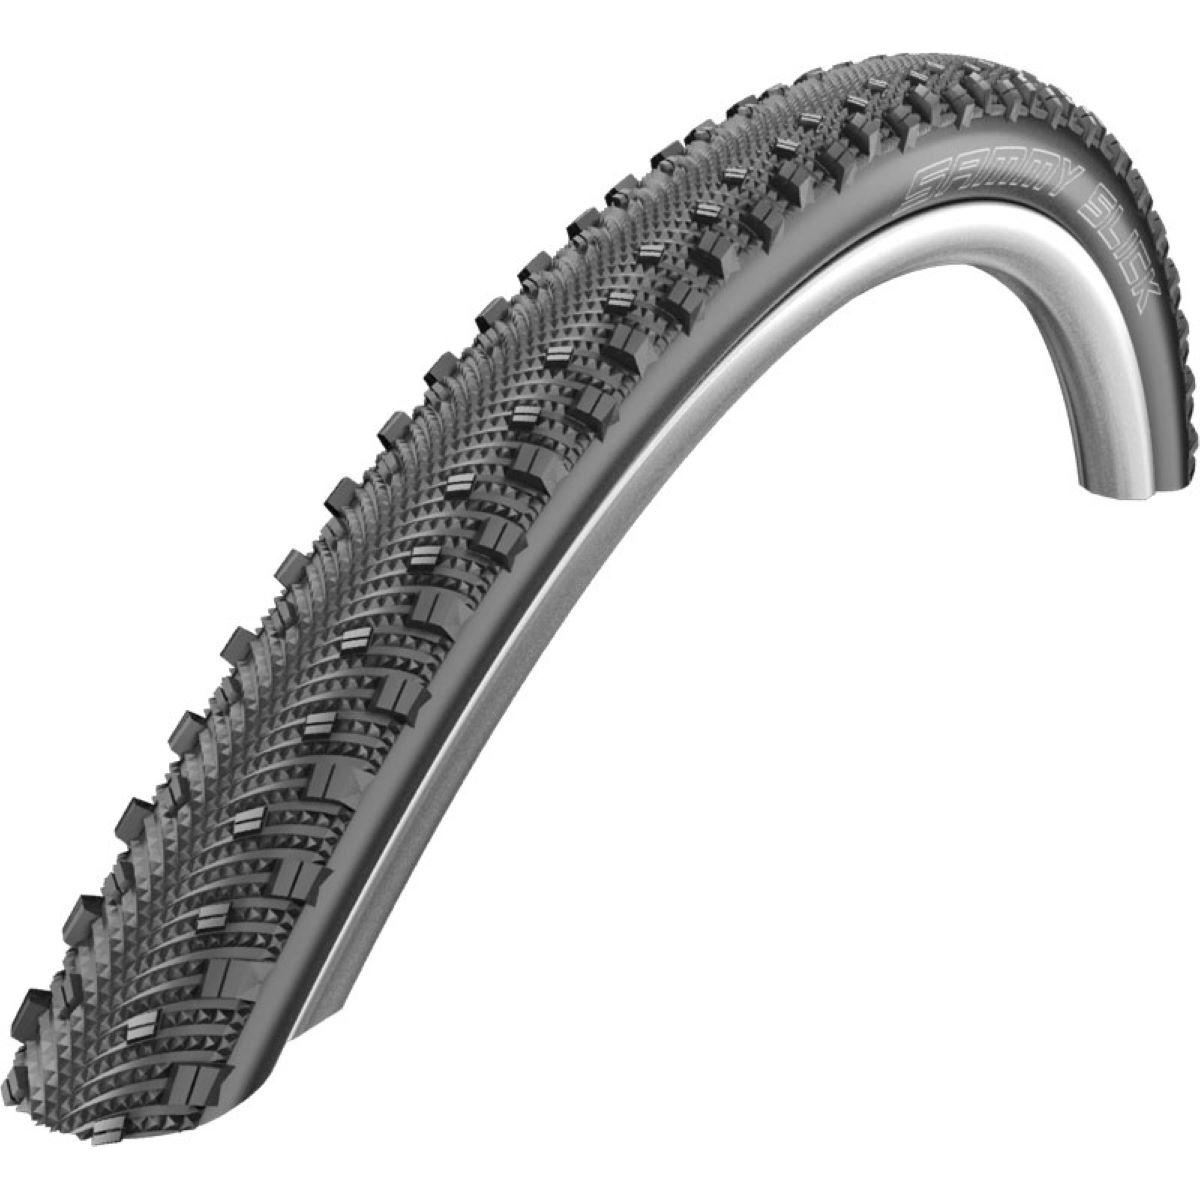 Pneu de cyclo-cross Schwalbe Sammy Slick (souple) - 700 x 35c Noir Pneus cyclo-cross